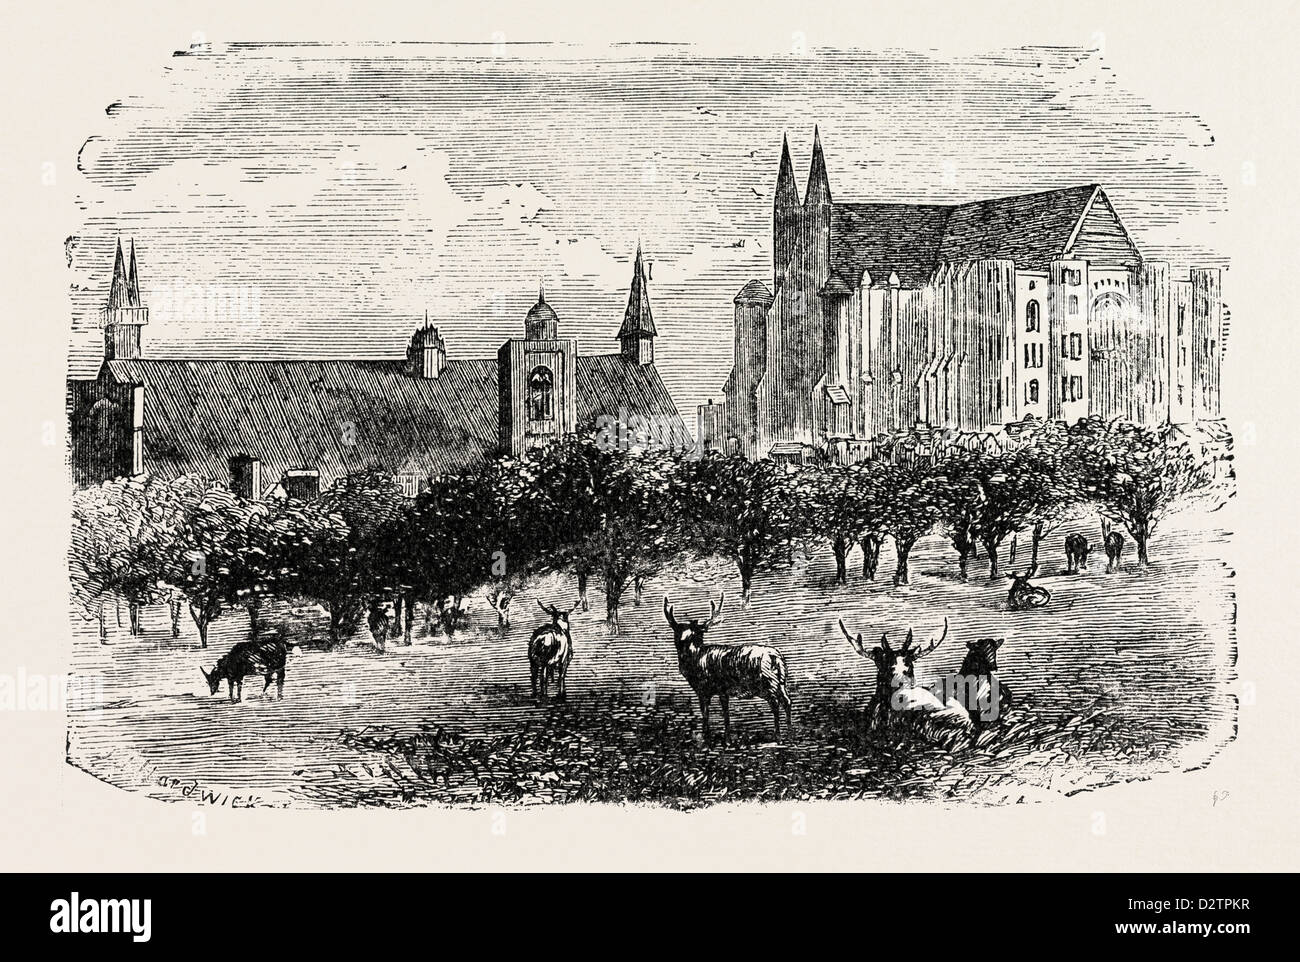 WESTMINSTER ABBEY AND HALL IN THE 15TH CENTURY. - Stock Image